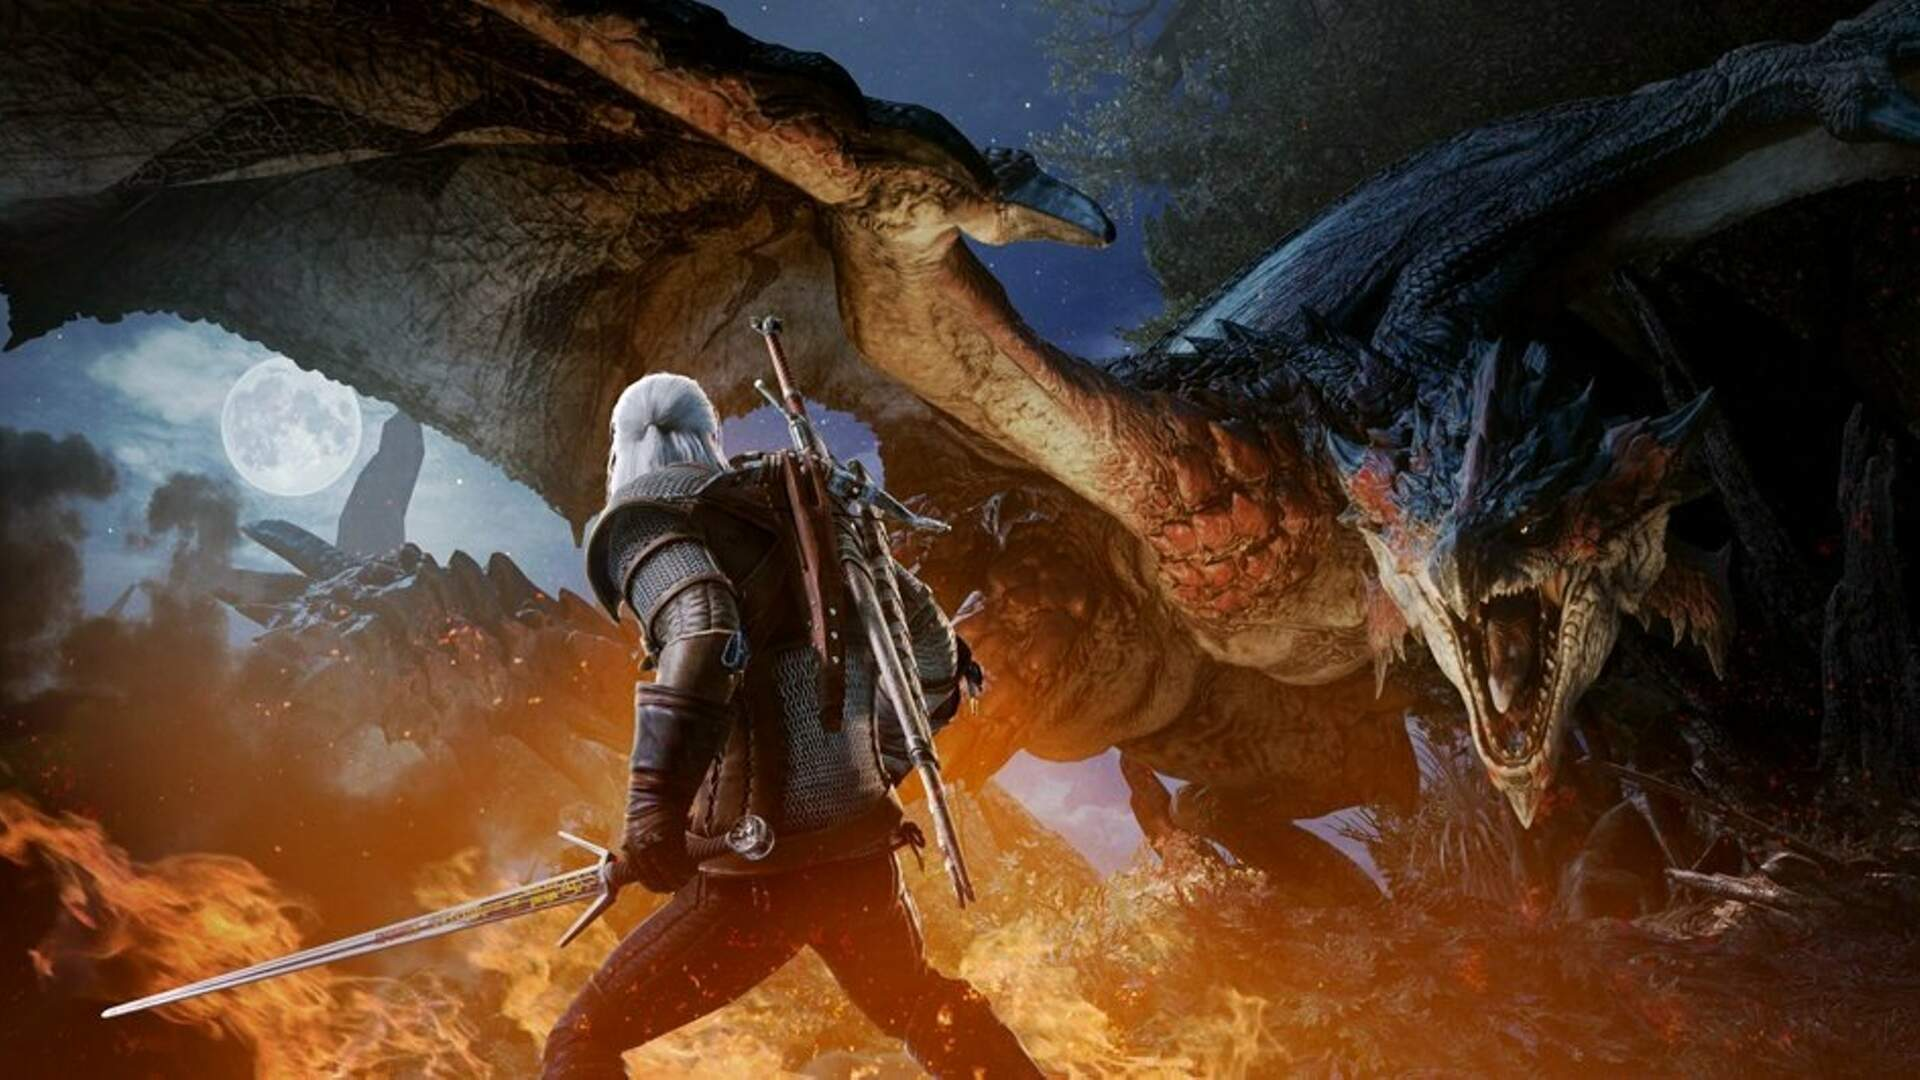 Monster Hunter: World's Witcher Crossover Event Begins Today. Here's What You Need to Know